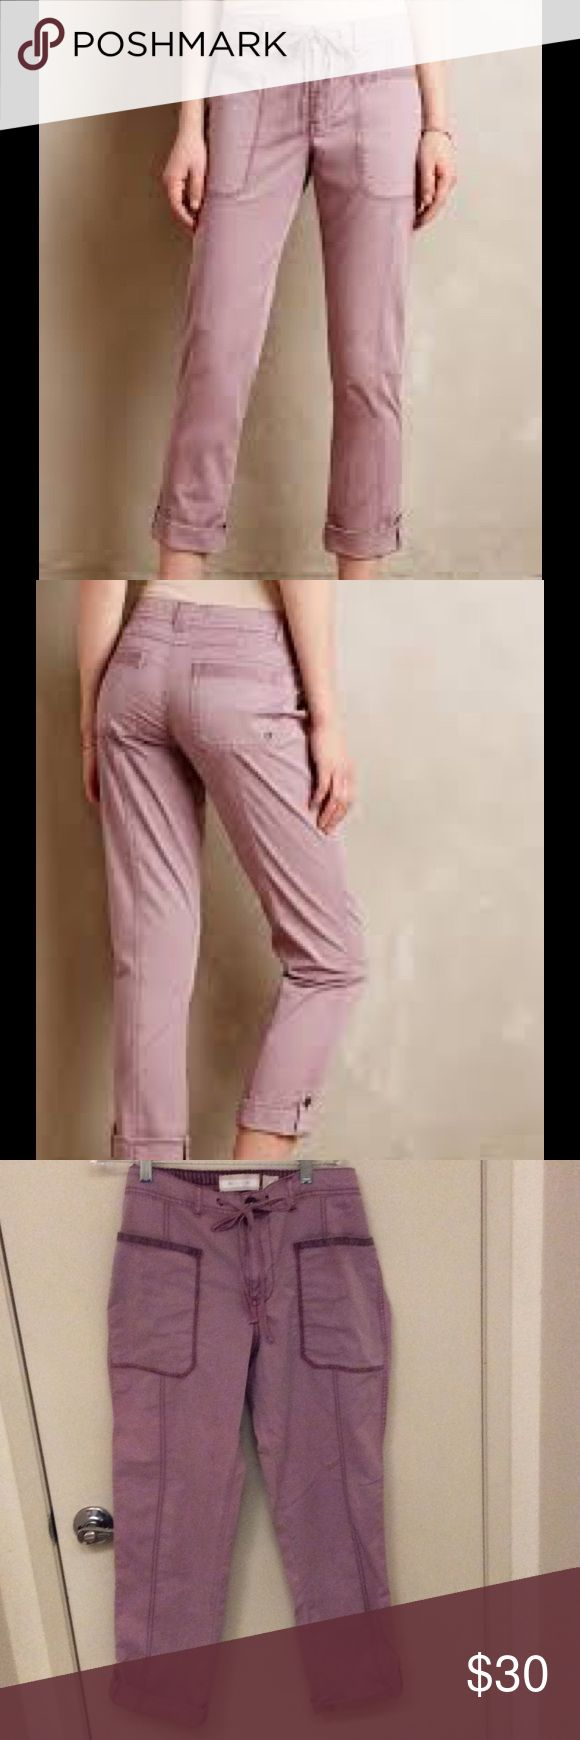 Hei hei fairweather rollups plum pants Hei hei fairweather rollups plum pants. Purchased at anthropologie. Comfy with large pockets and adjustable waist. from my mom's closet and never been worn. Anthropologie Pants Ankle & Cropped